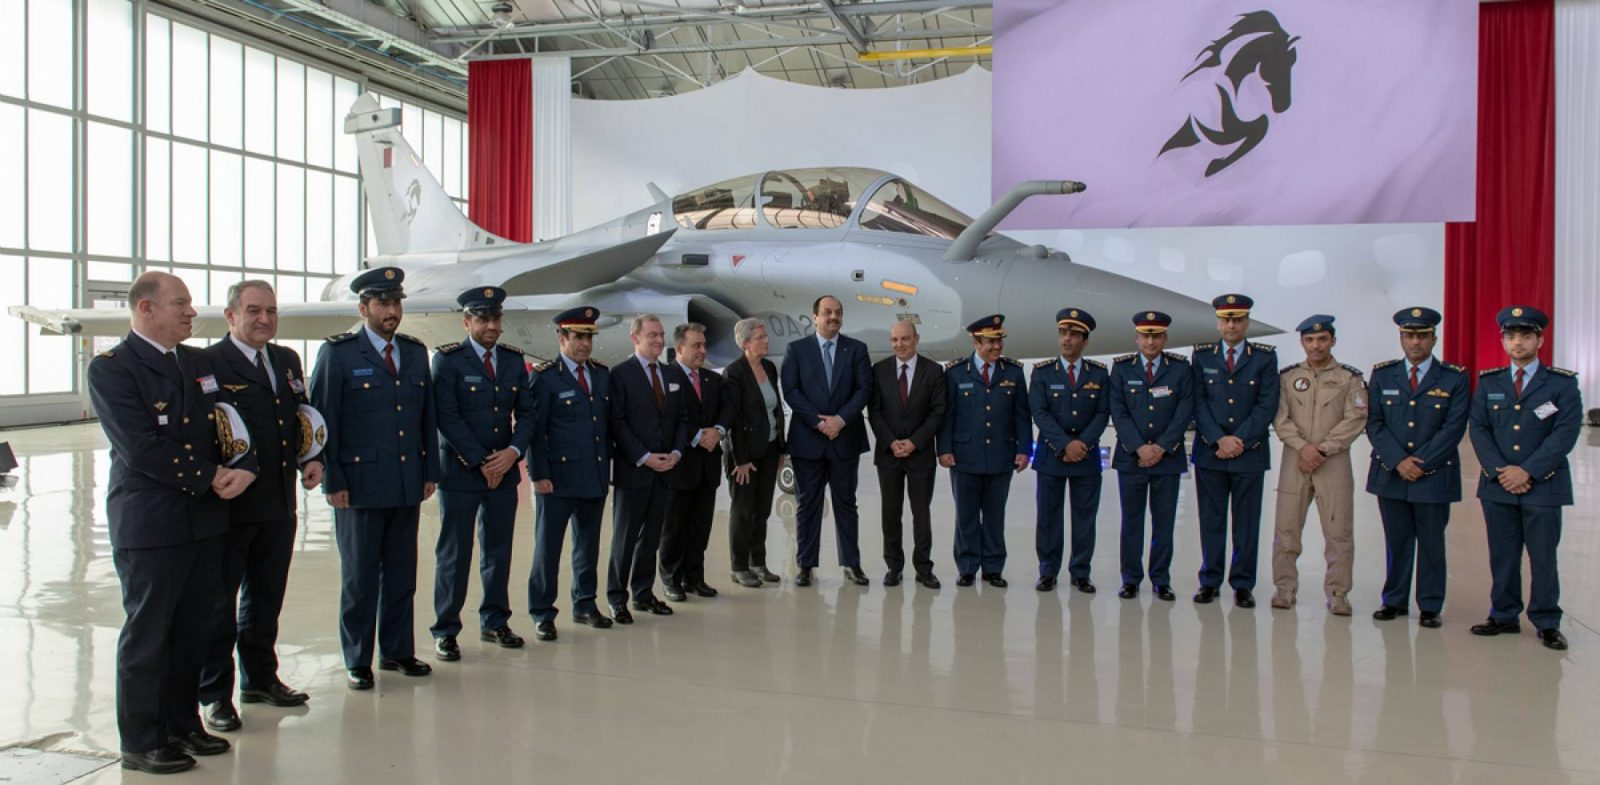 PAF Pilots flew Rafale? Has PAF Already Known The Secrets Of IAF New Rafael Fighter Jets